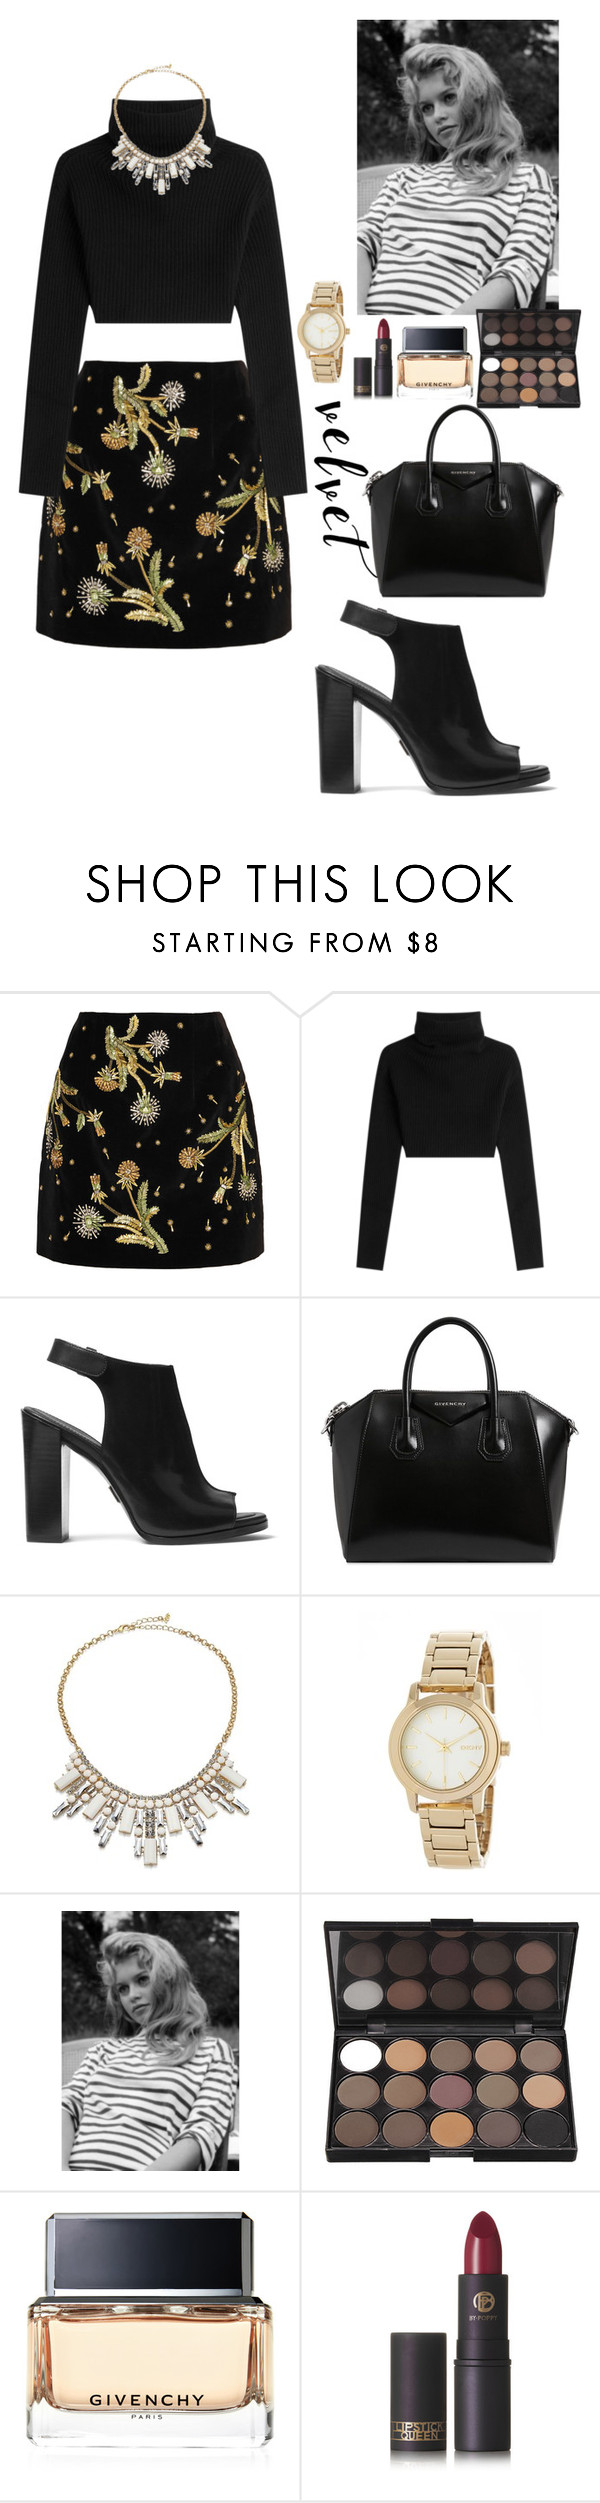 """JP"" by crystlbll ❤ liked on Polyvore featuring Topshop Unique, Valentino, Michael Kors, Givenchy, ABS by Allen Schwartz, DKNY and Lipstick Queen"